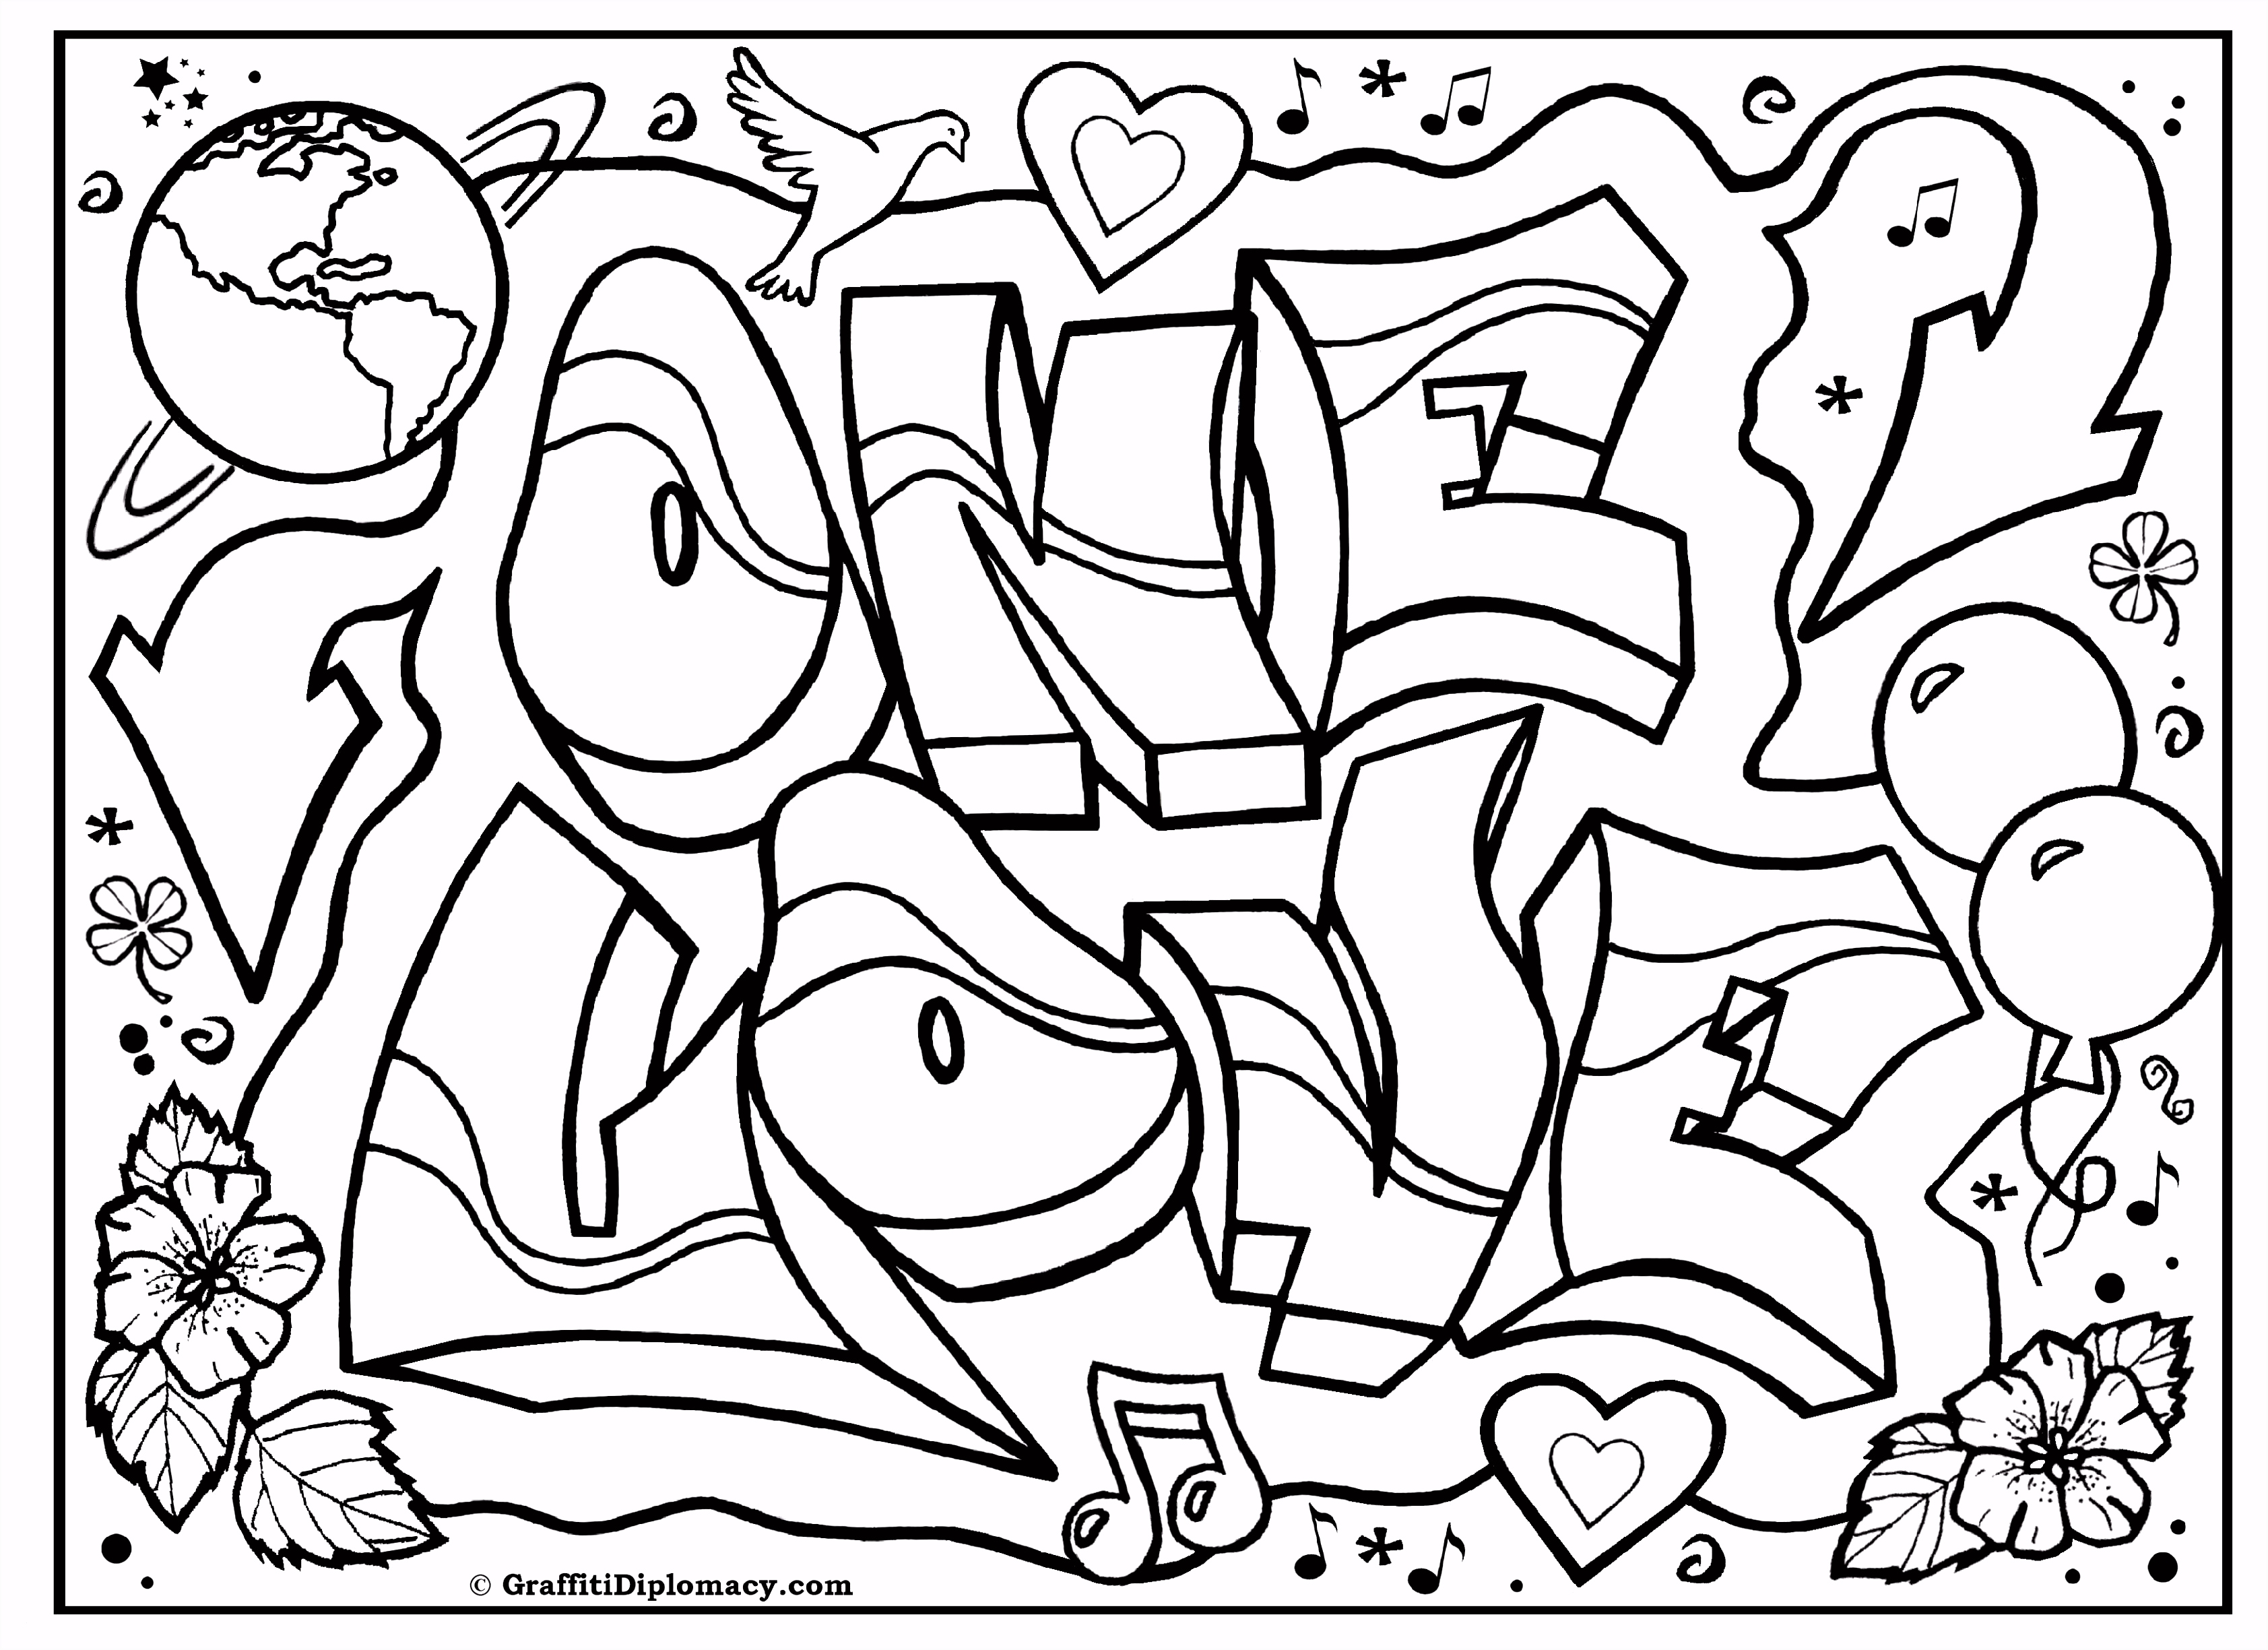 Graffiti Schrift I Love You Beau s Fonts] Wings Samsung Fonts